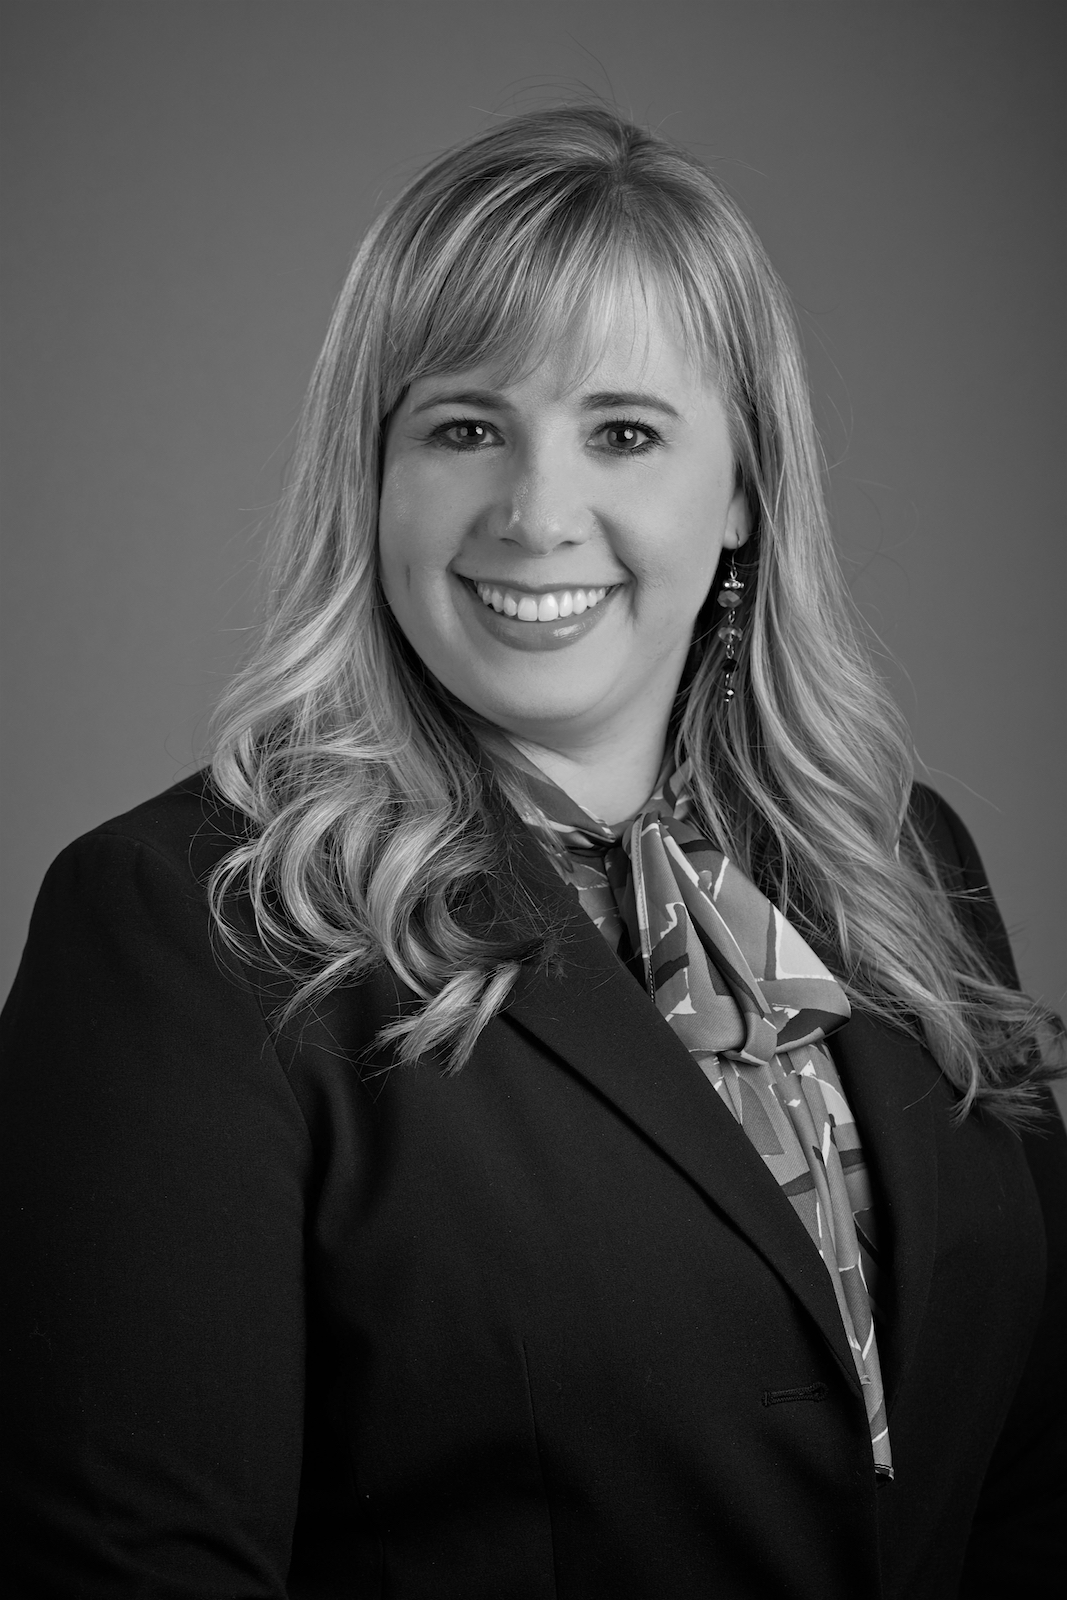 Liberty Mutual Insurance and Corporate photography and Head Shots in Knoxville